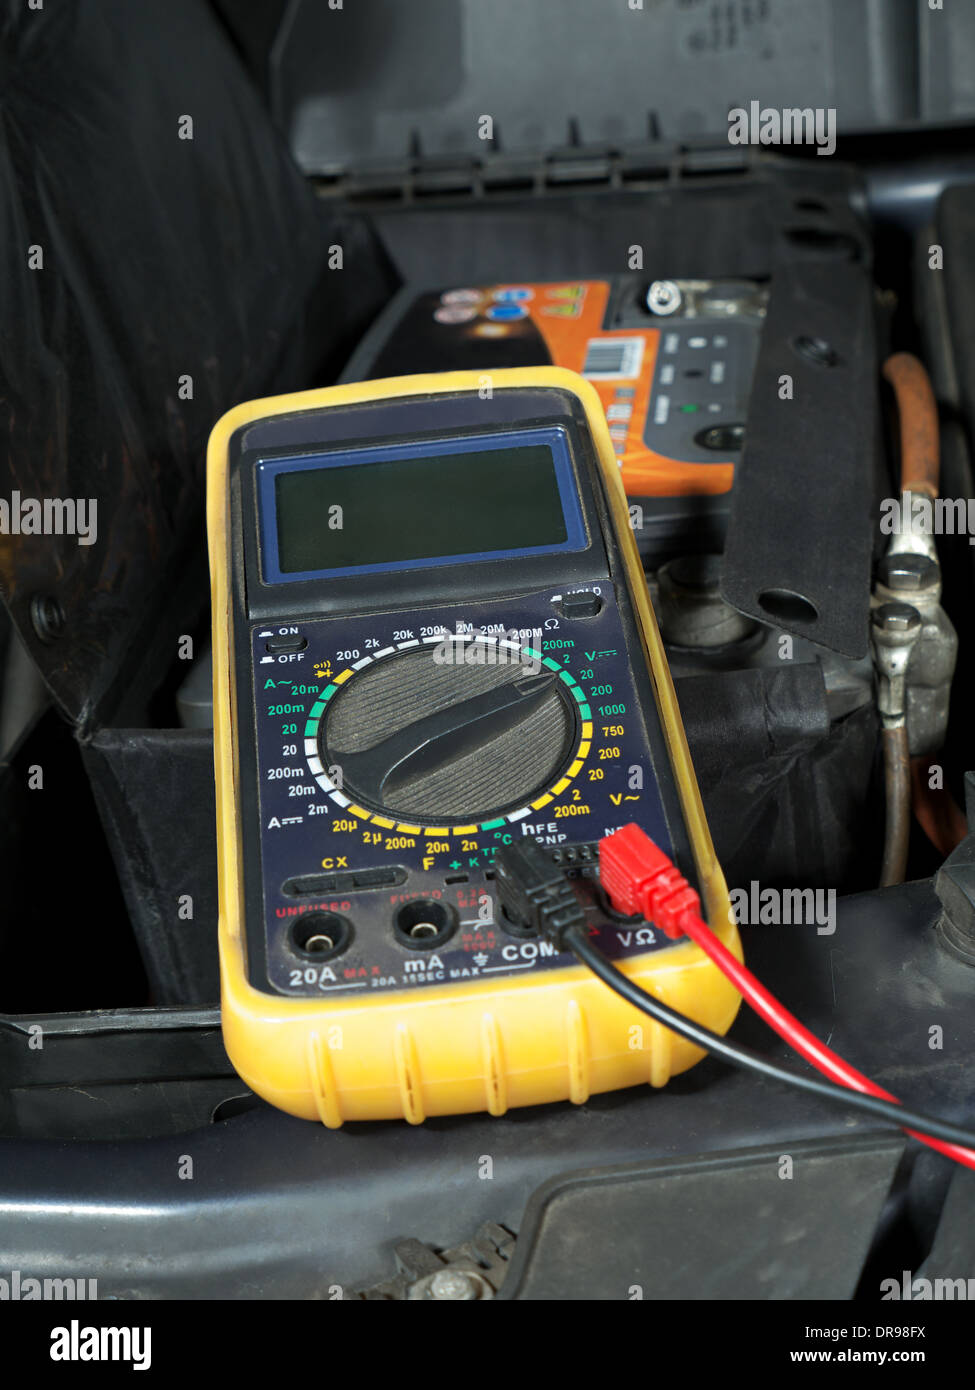 Multimeter set up and ready for taking car battery voltage measurement - Stock Image